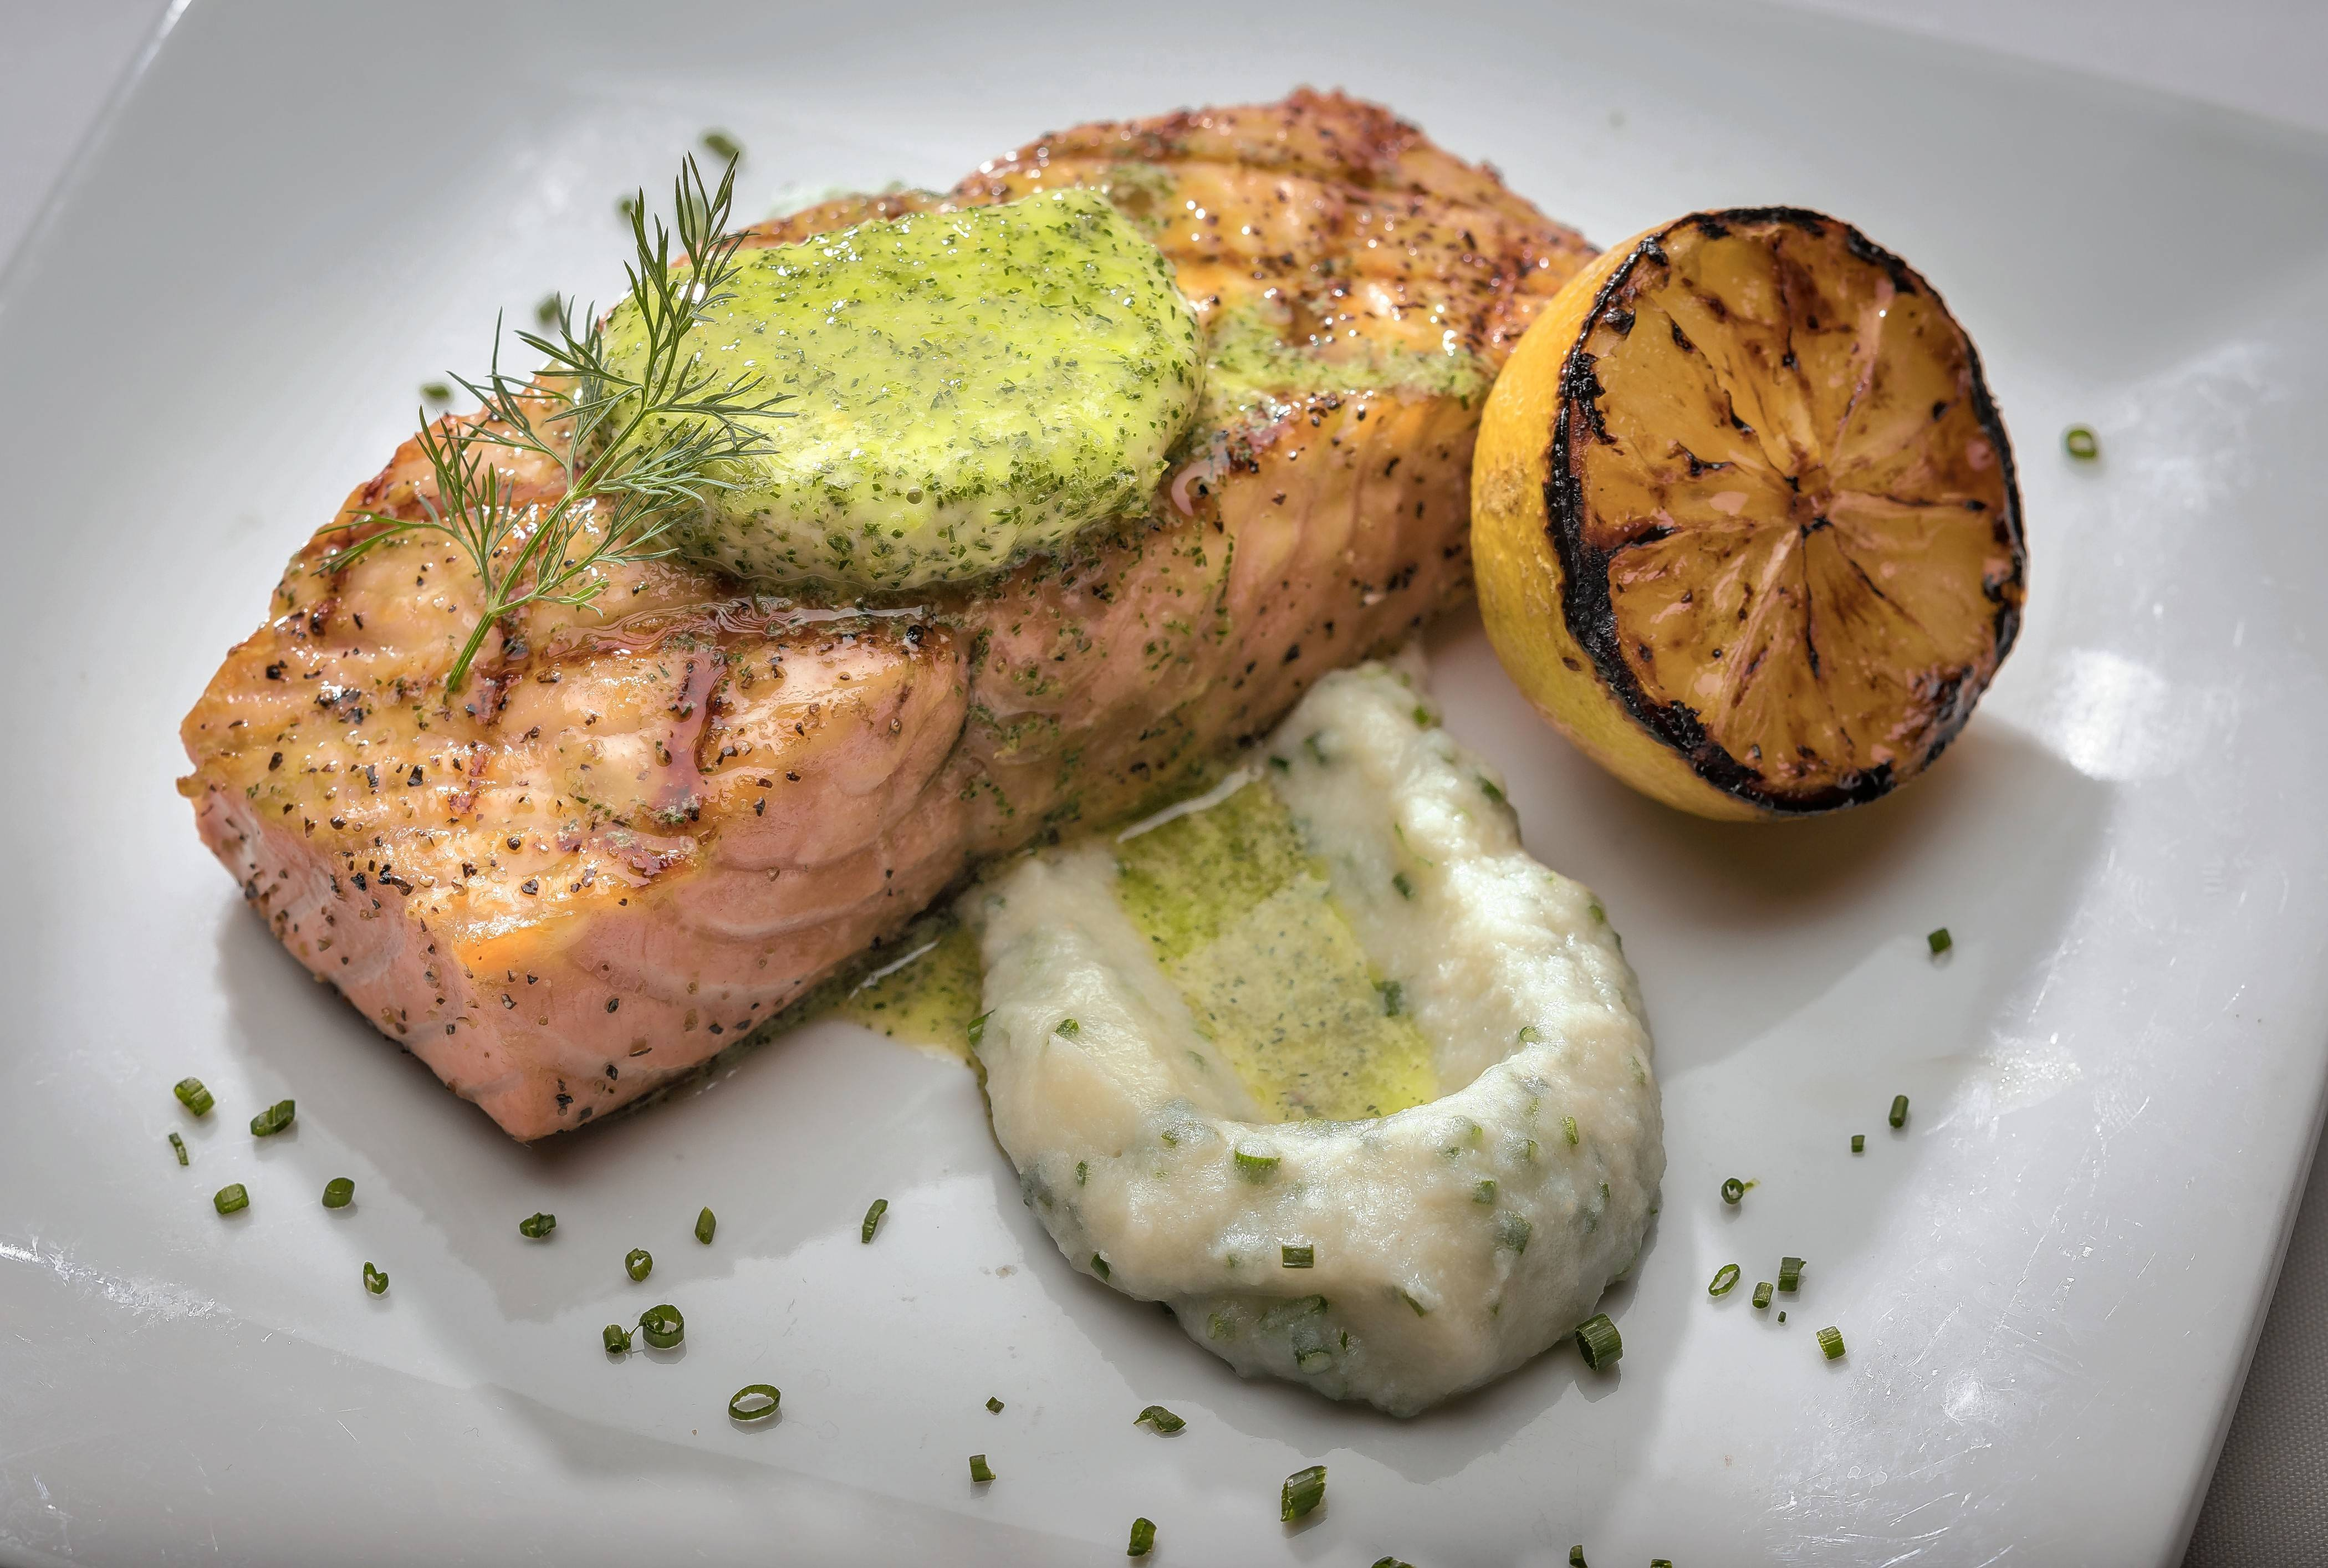 The Atlantic salmon grilled with lemon dill butter comes with a side of cauliflower mousse.